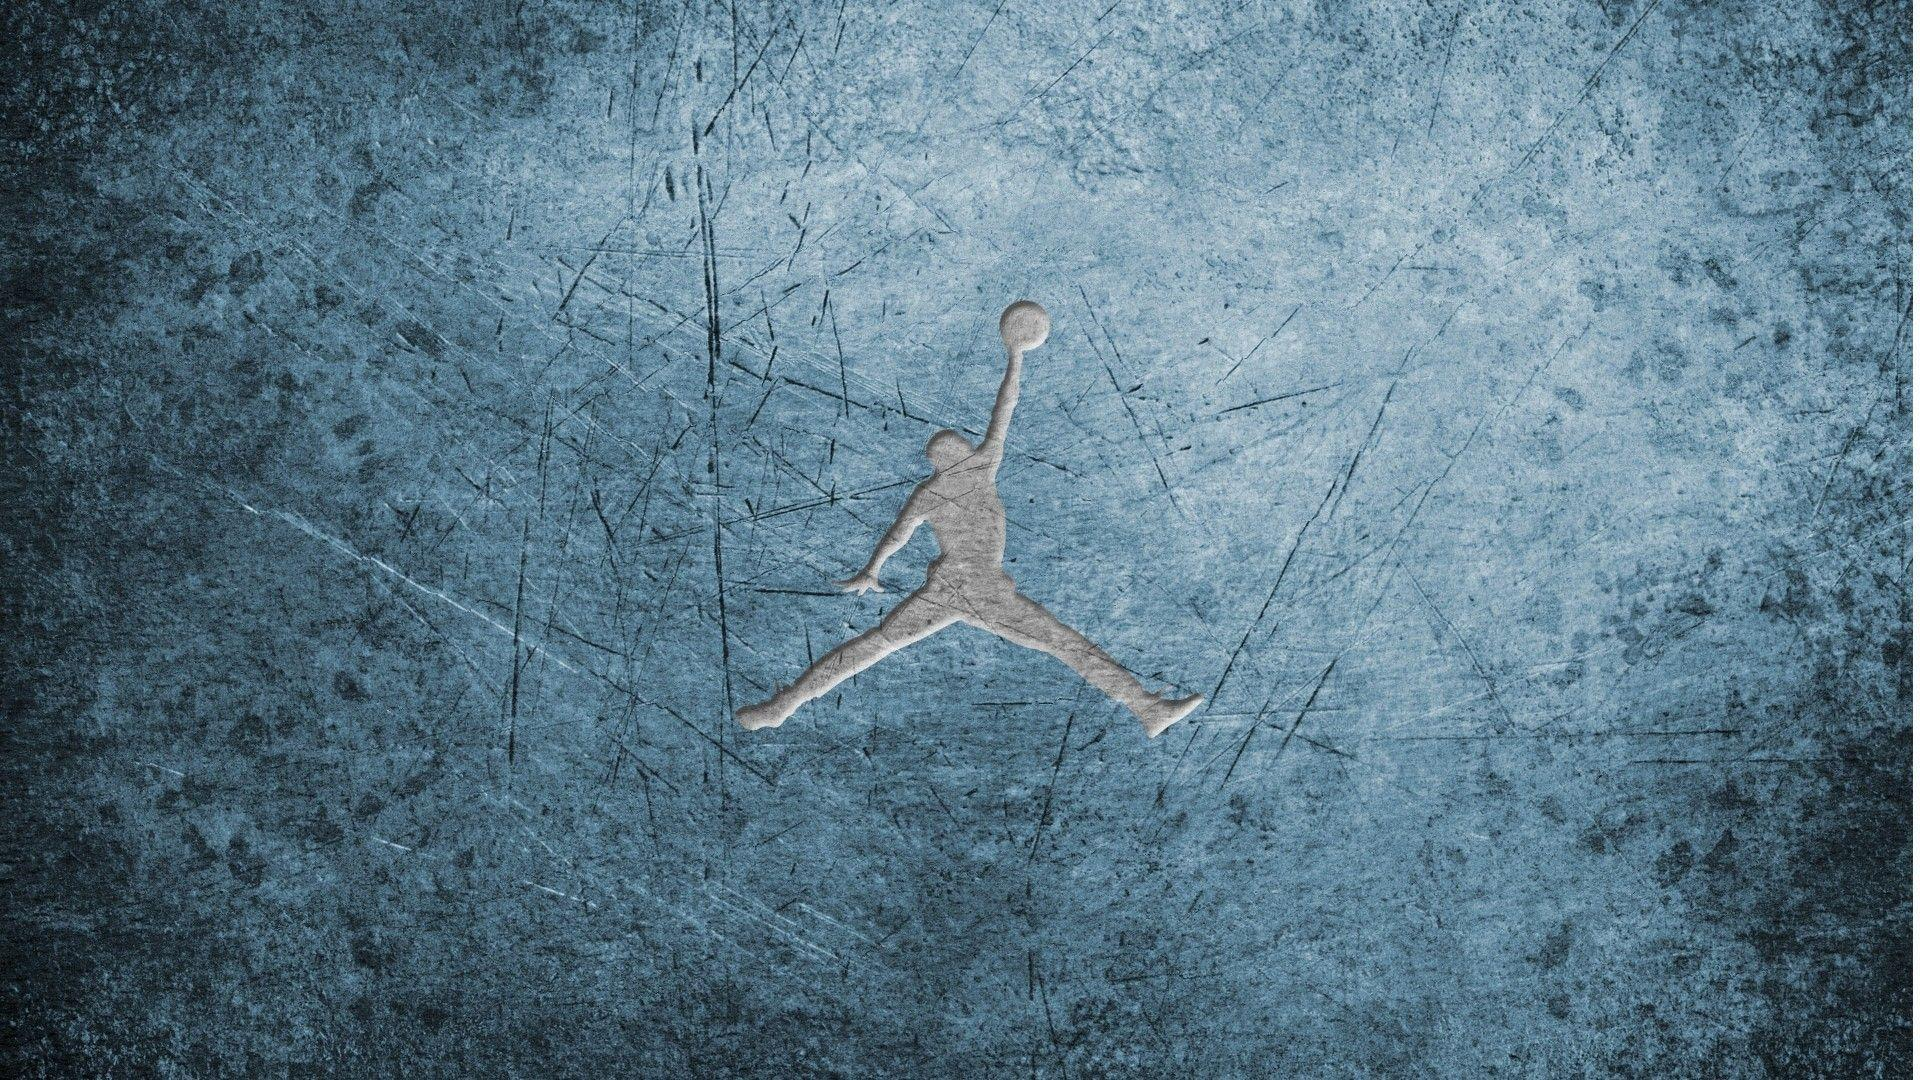 jumpman logo wallpaper mash - photo #18